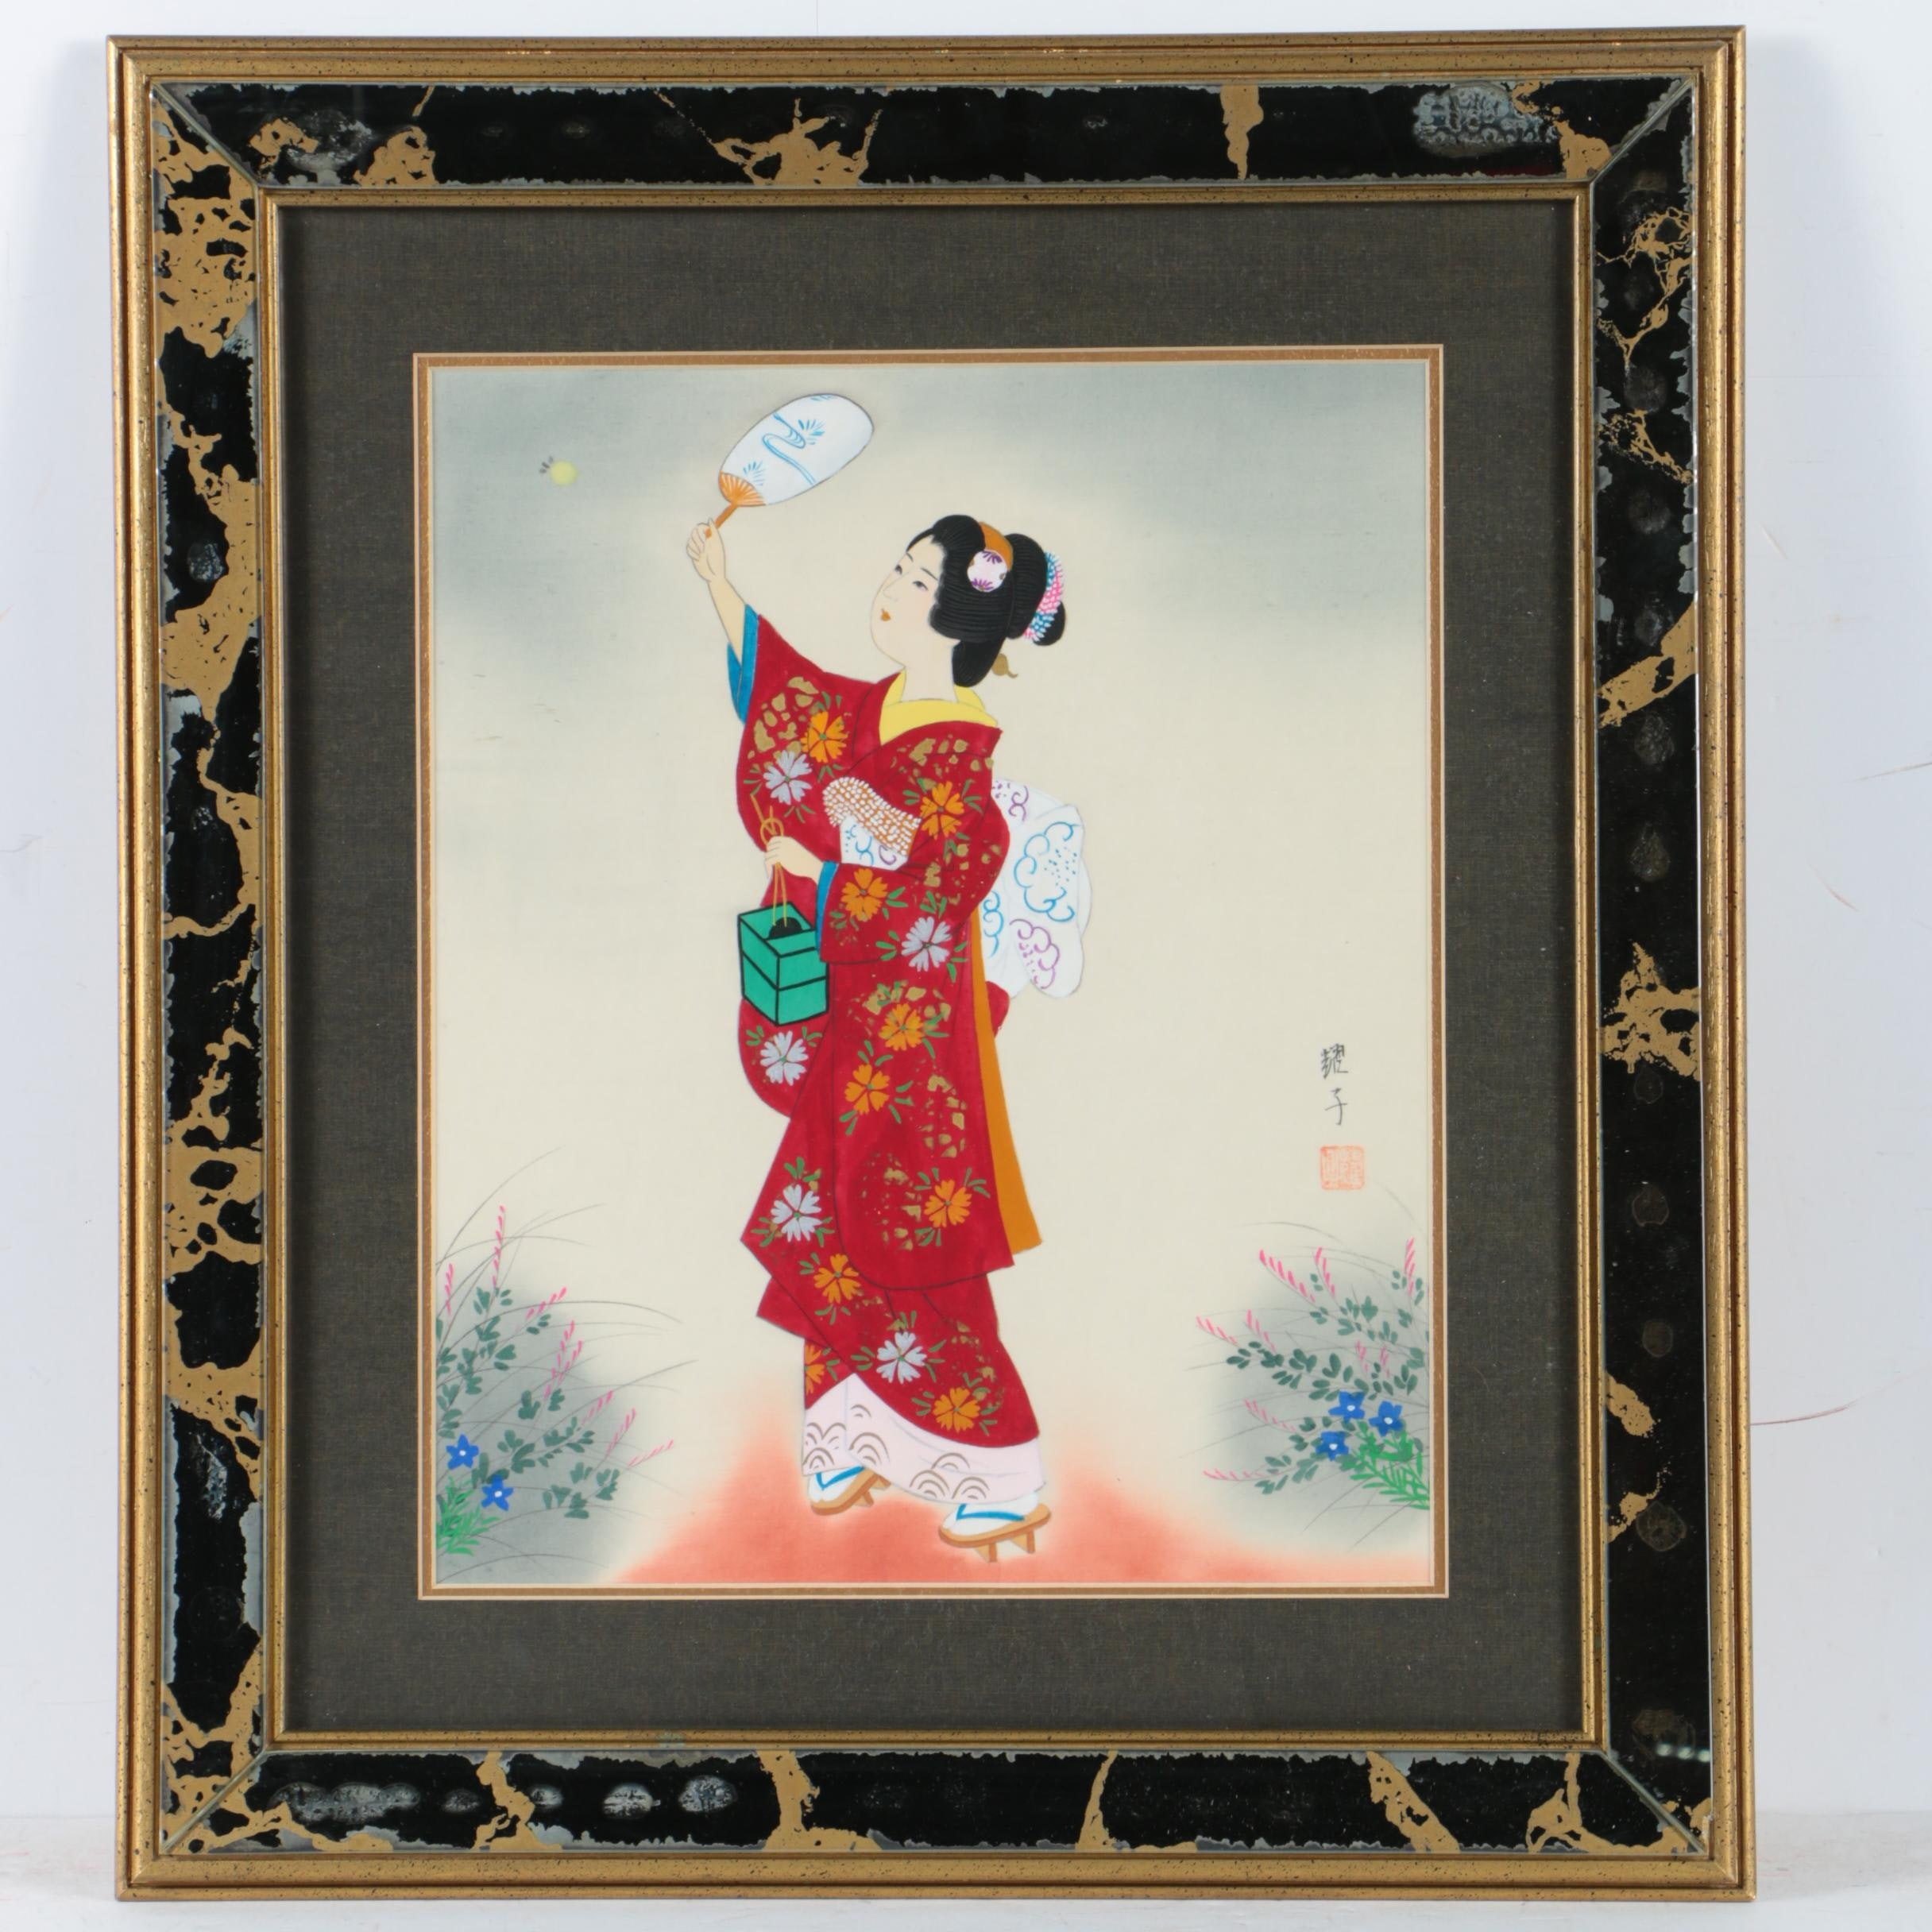 East Asian Gouache Painting of a Woman on Silk